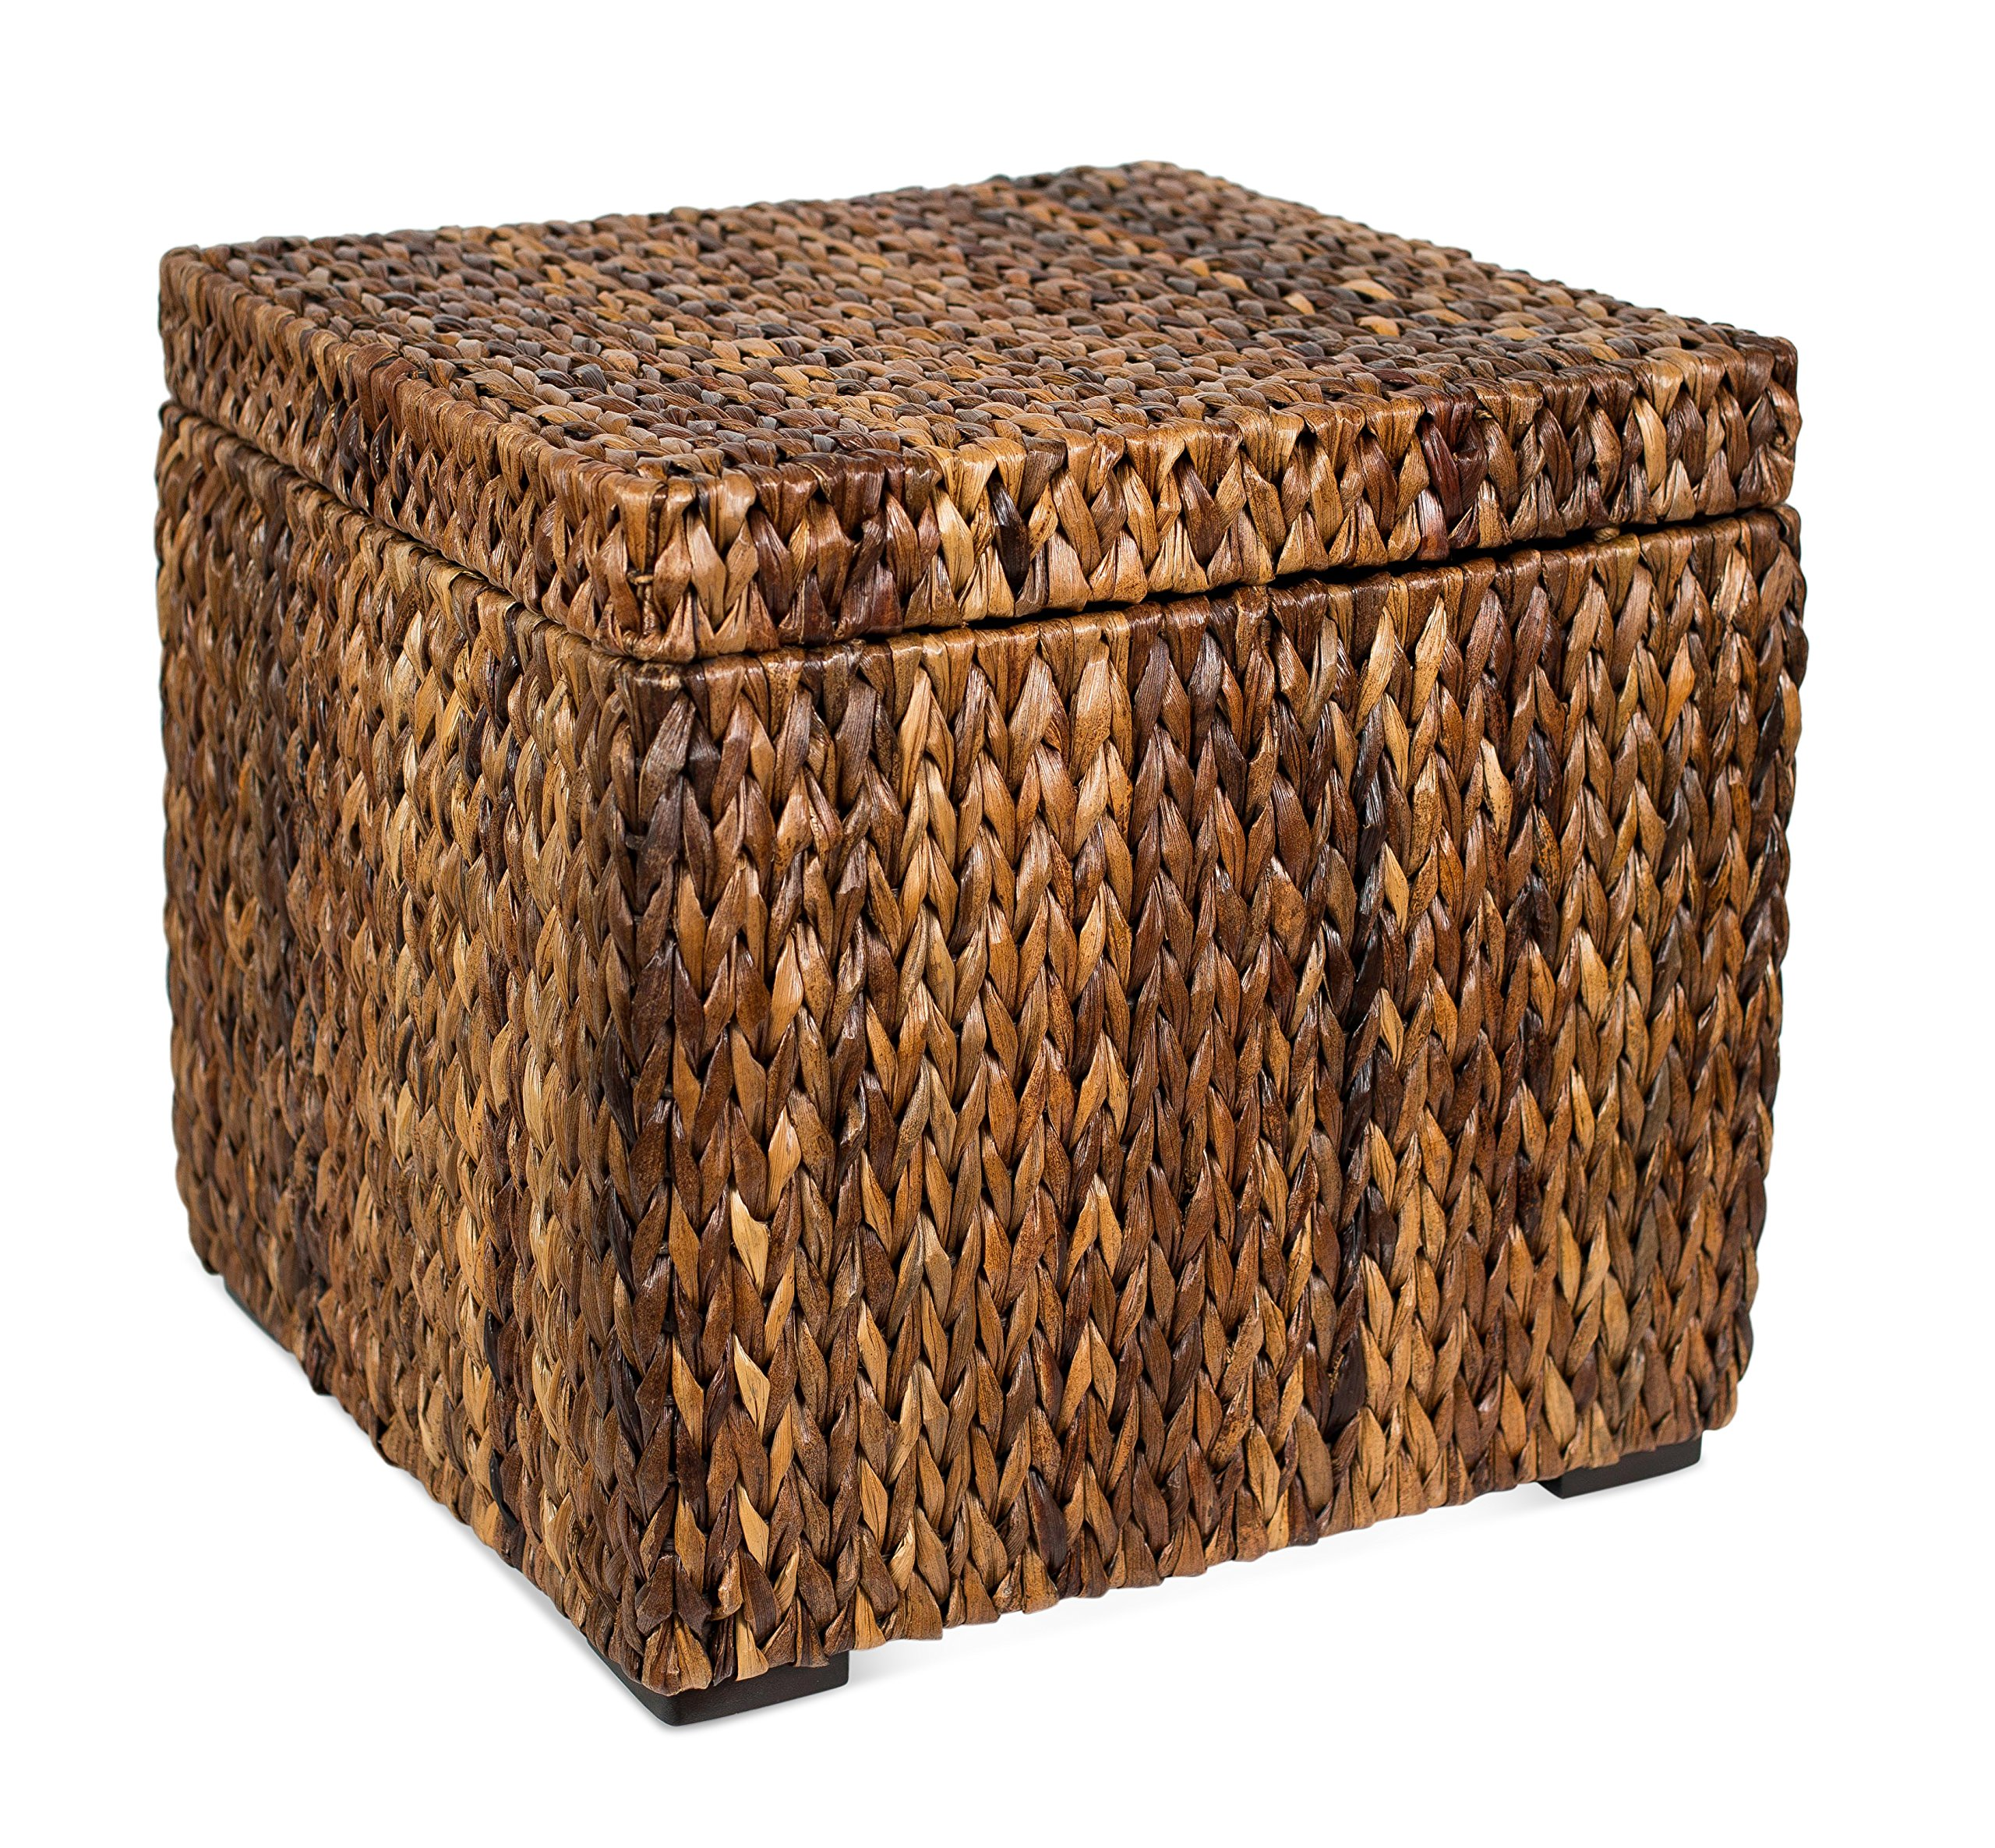 BIRDROCK HOME Woven Storage Cube - Abaca Seagrass Decorative Ottoman - Living Room Side Table - Store Blankets Pillows Magazines Books Remotes by BIRDROCK HOME